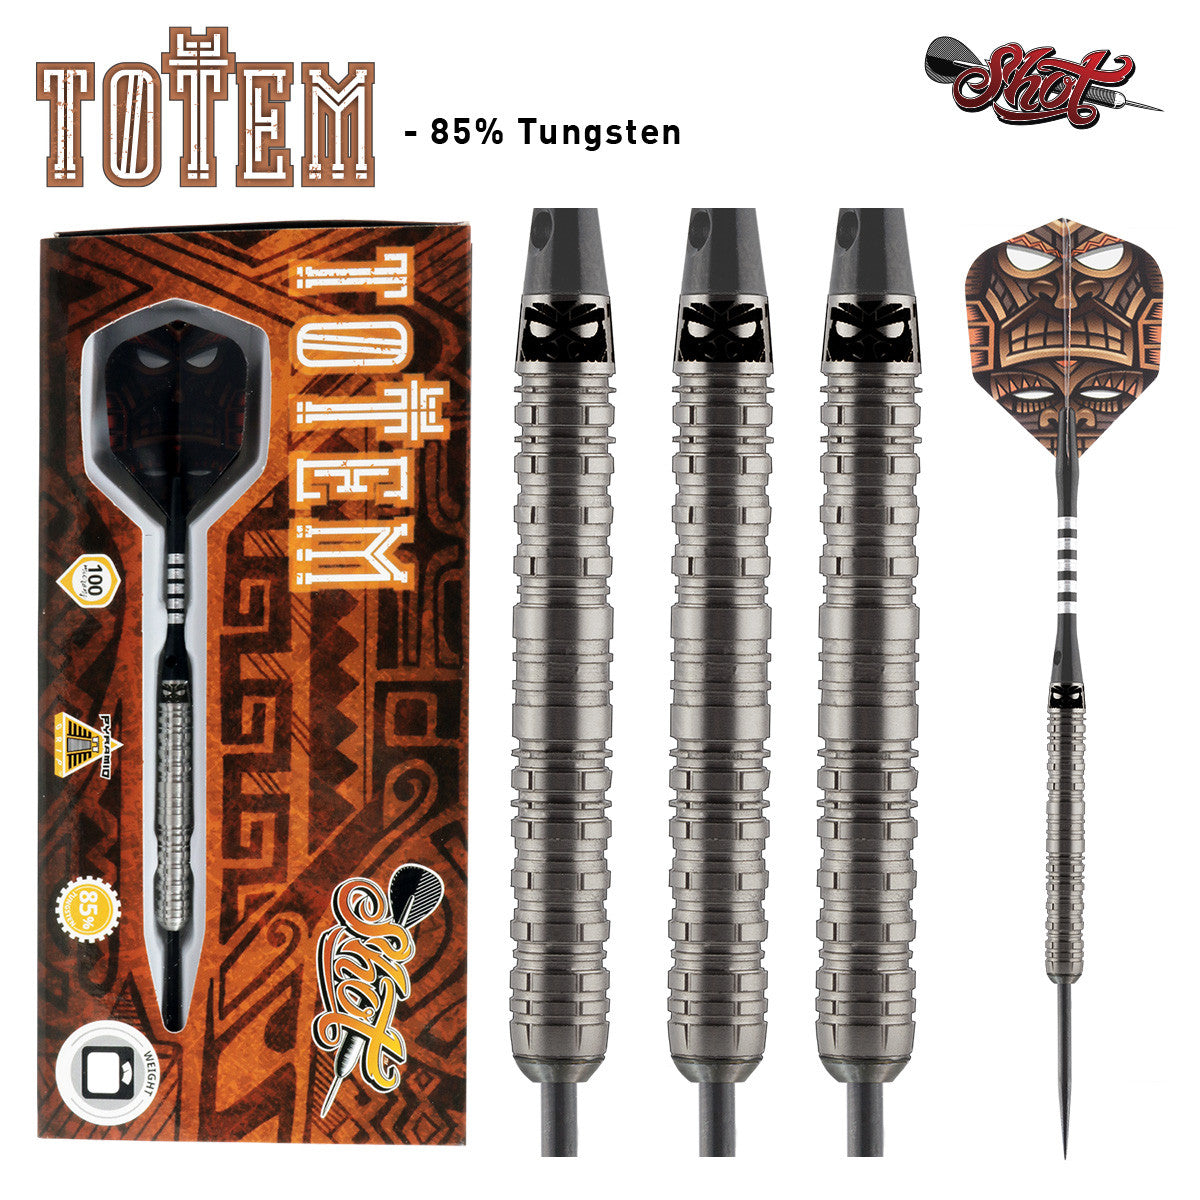 Totem 2 Series Steel Tip Darts 85% Tungsten